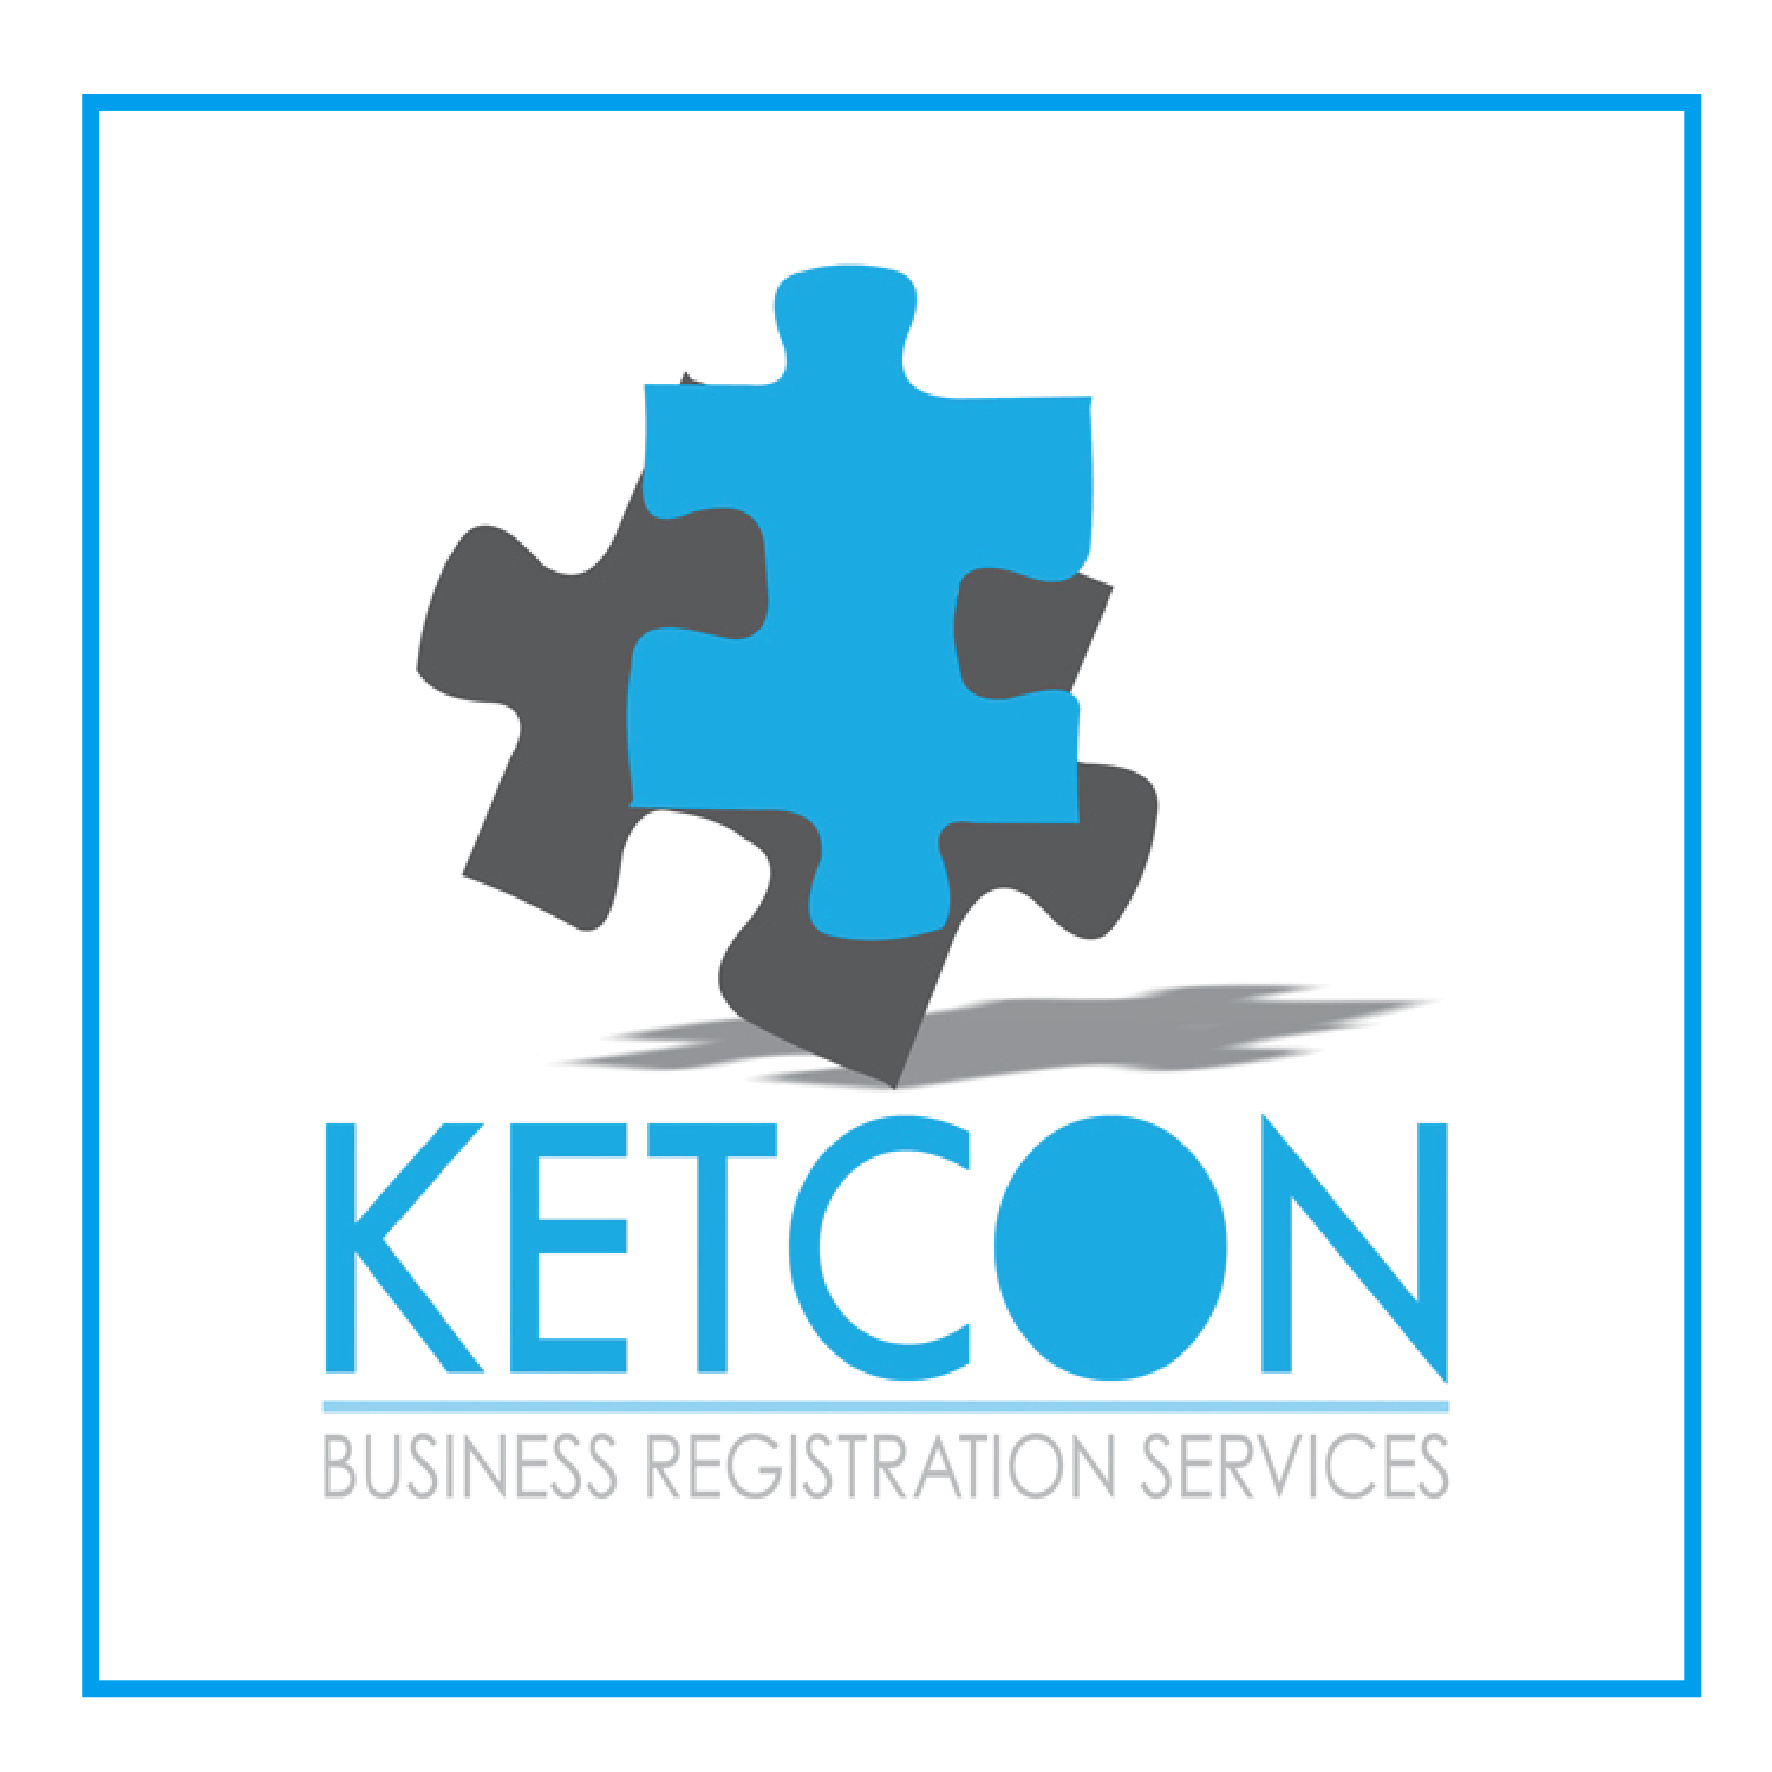 Ketcon (Pty) Ltd